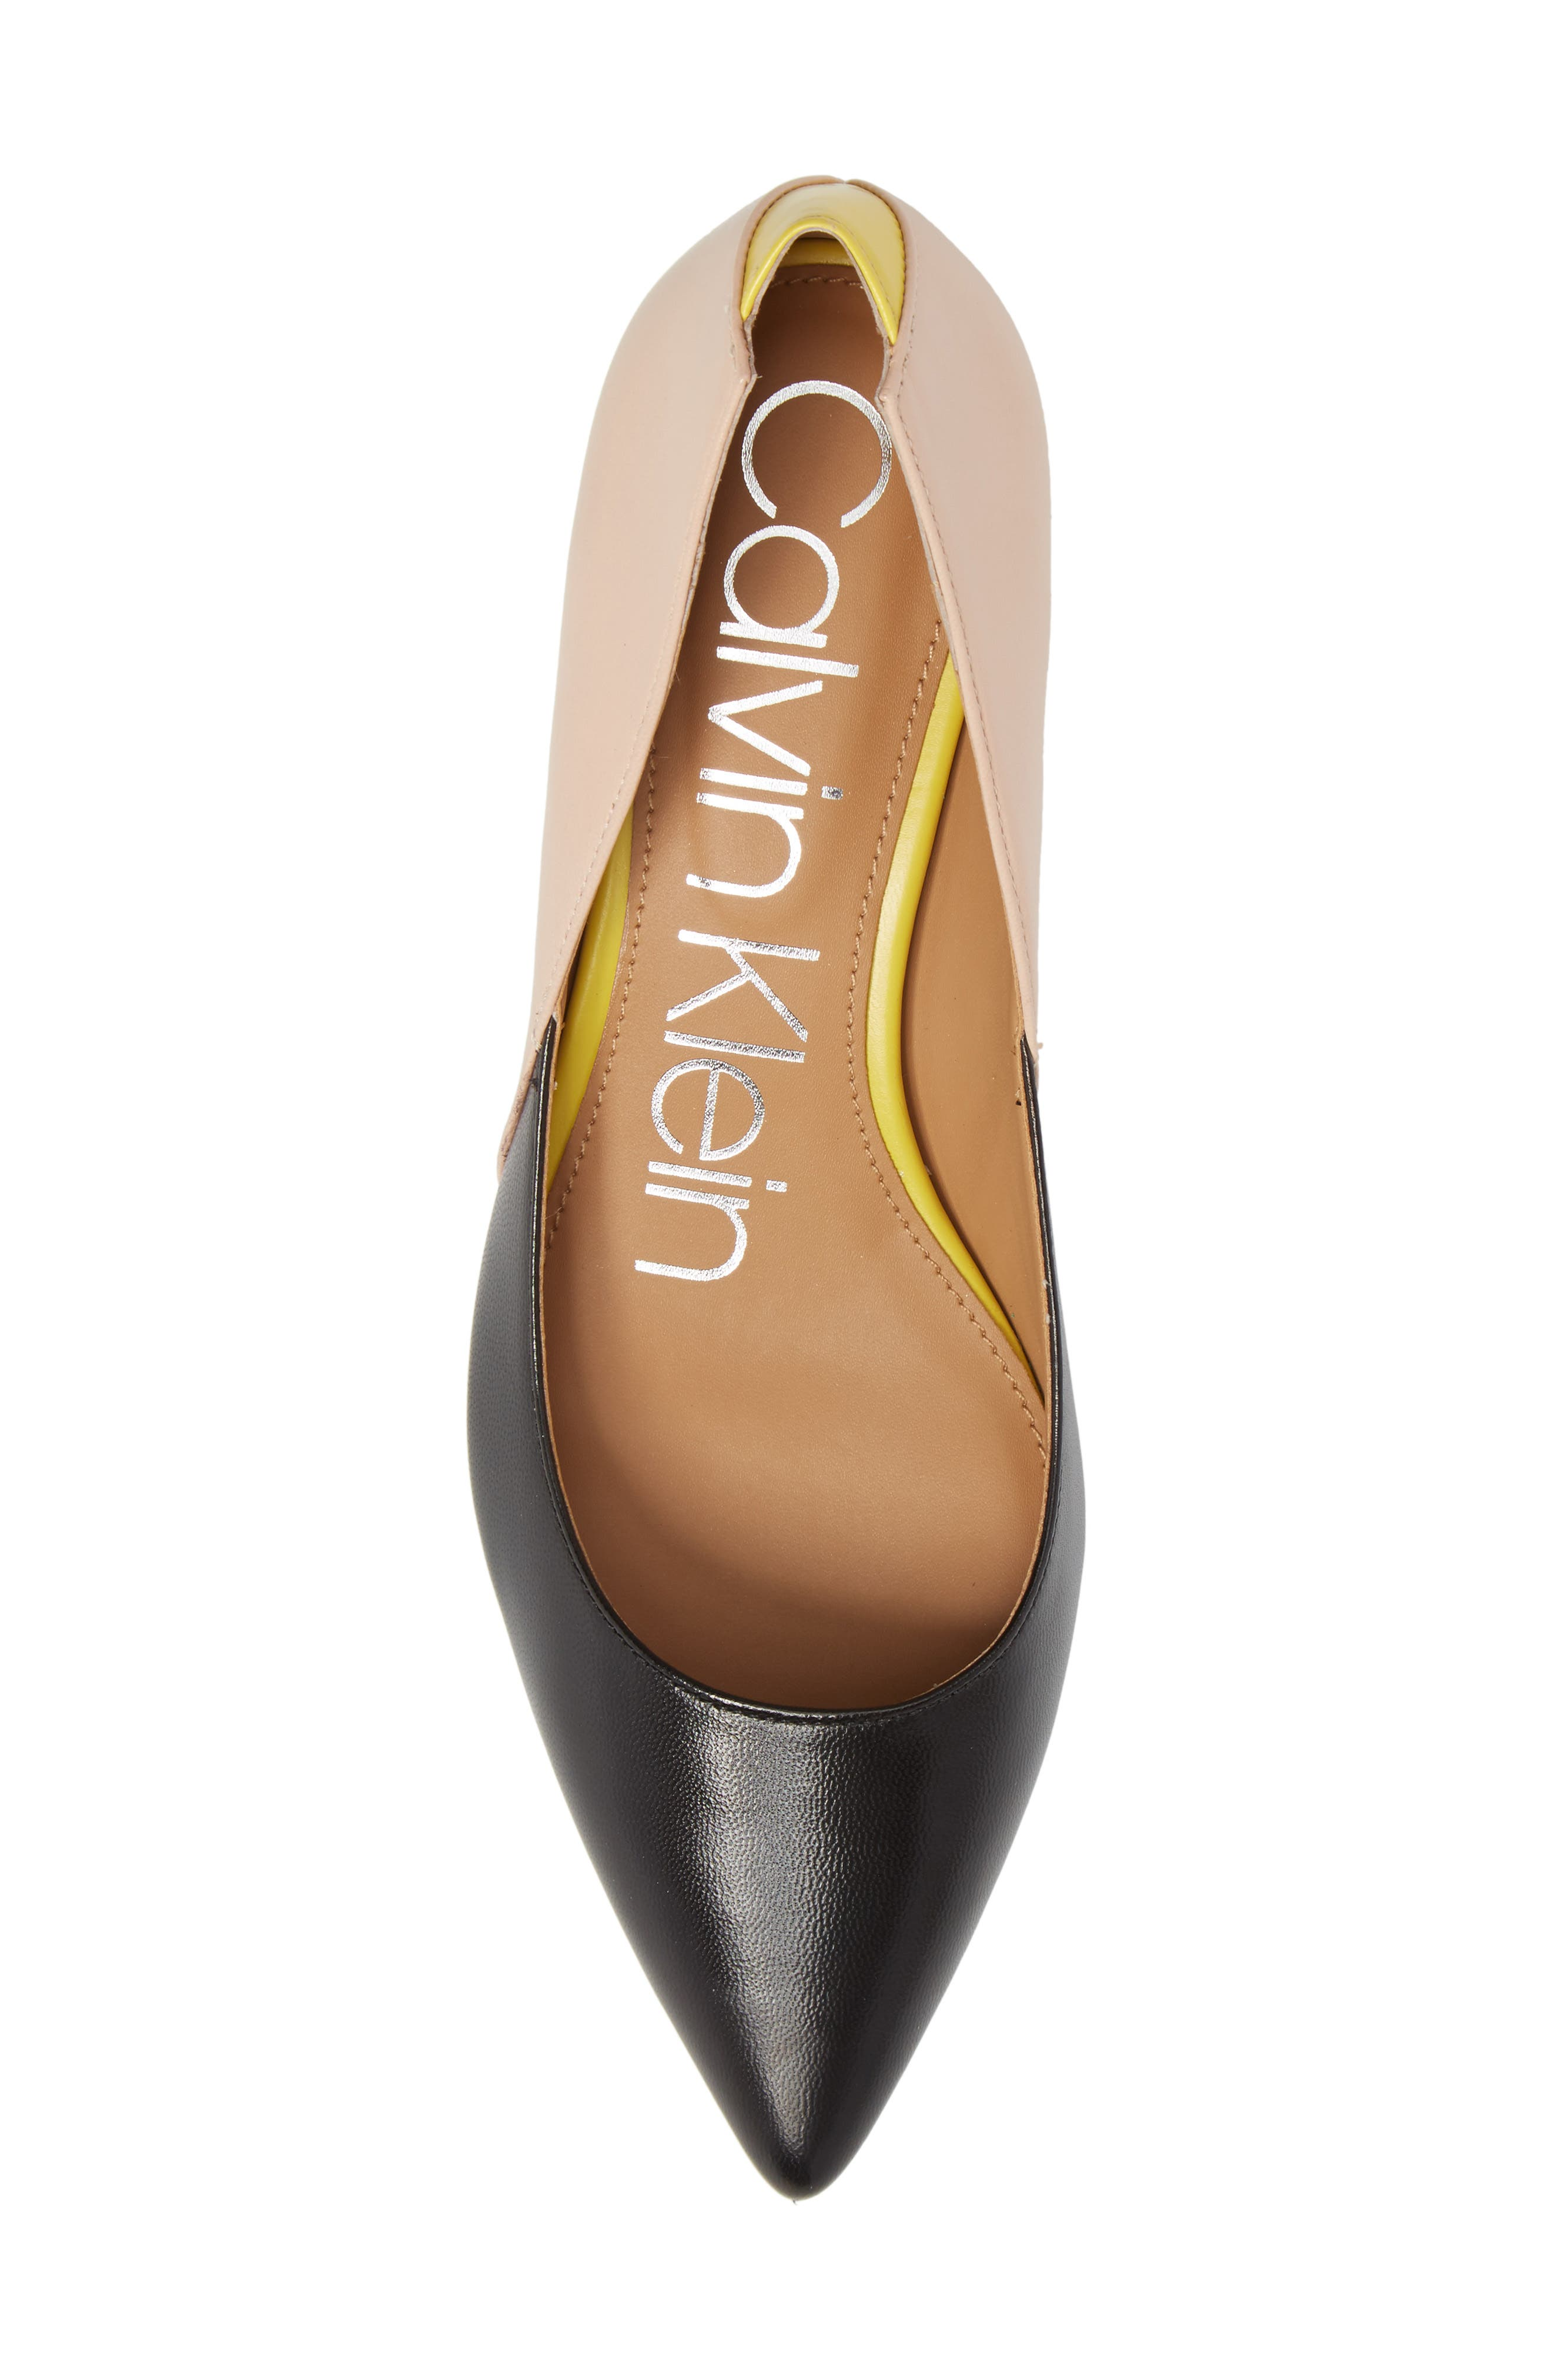 Grayce Pointy Toe Pump,                             Alternate thumbnail 5, color,                             002